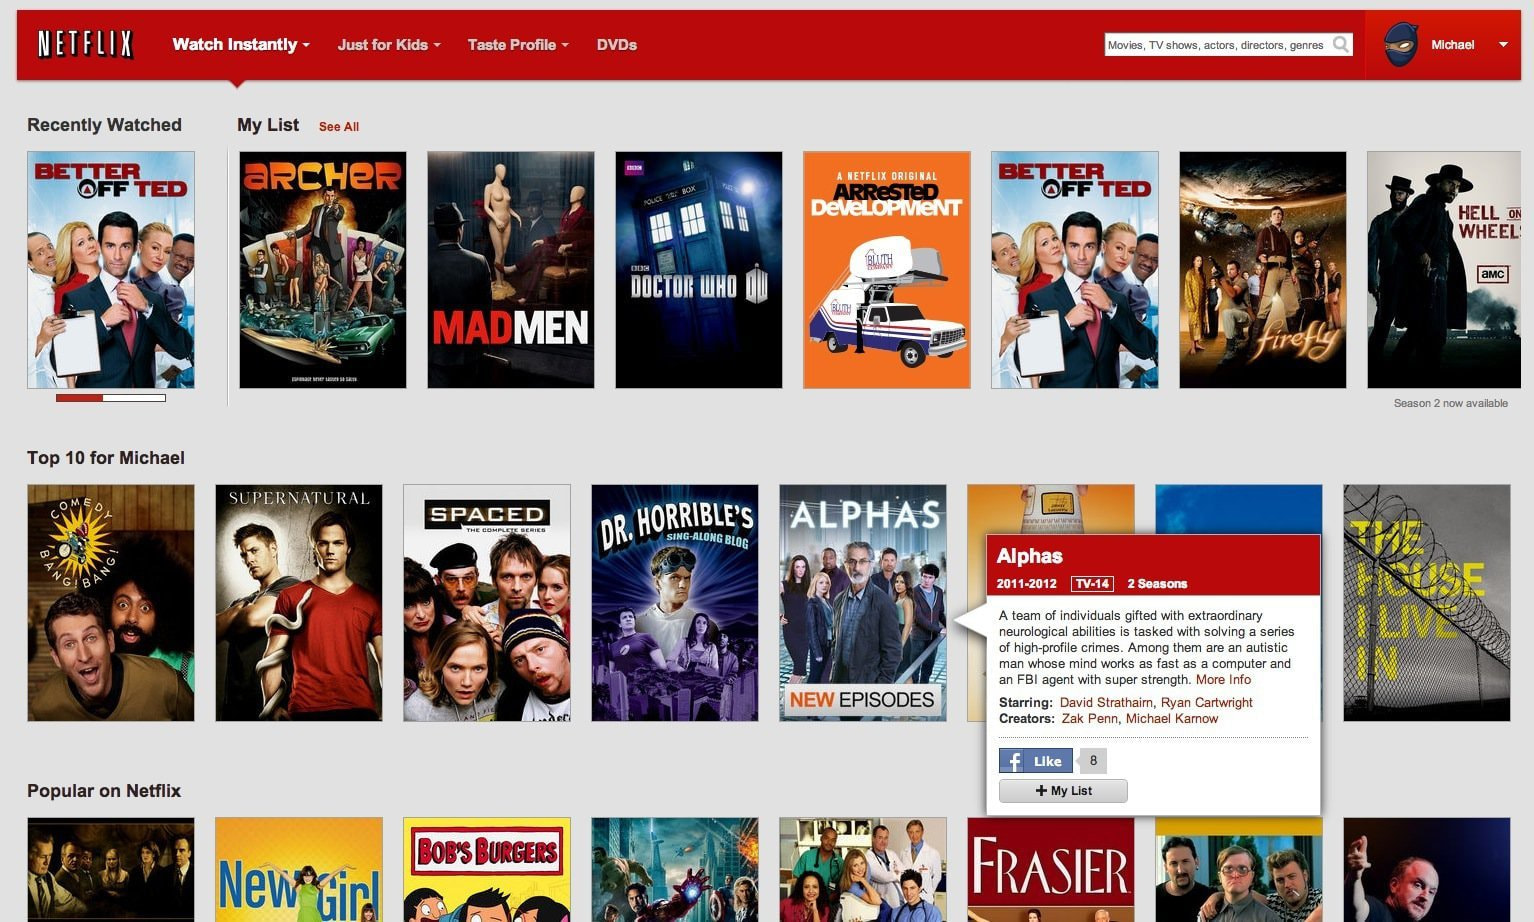 Image via iDownloadBlog. Netflix's website has a high degree of functionality and a beautiful design that for the most part remains invisible, as most good design does.